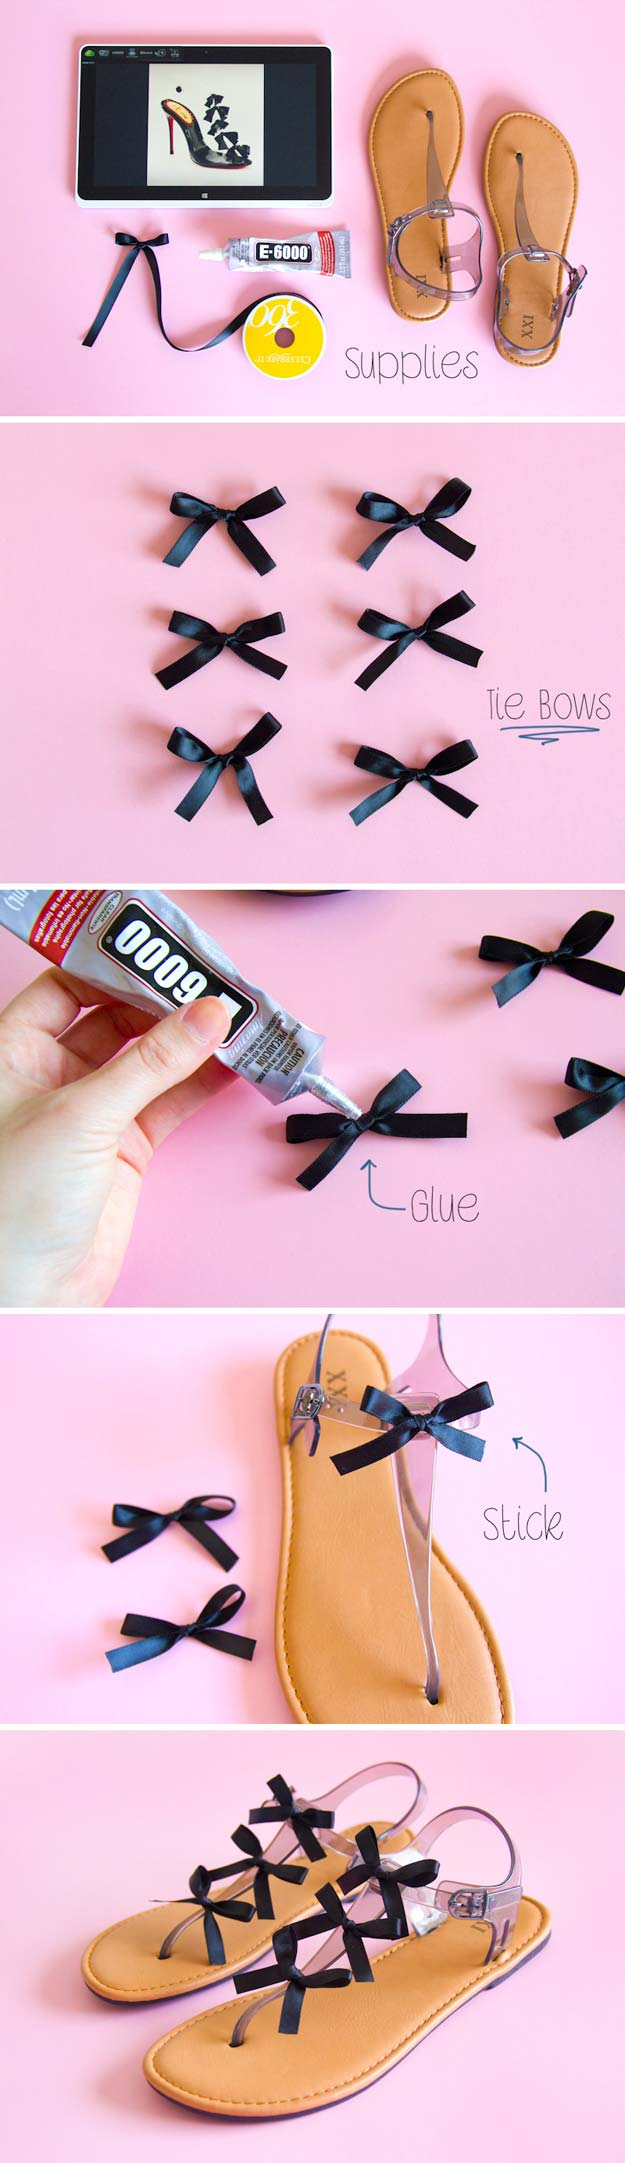 DIY Sandals and Flip Flops - DIY Game Day Bow Sandals - Creative, Cool and Easy Ways to Make or Update Your Shoes - Decorate Flip Flops with Cheap Dollar Store Crafts and Ideas - Beaded, Leather, Strappy and Painted Sandal Projects - Fun DIY Projects and Crafts for Teens and Teenagers http://diyprojectsforteens.com/diy-sandals